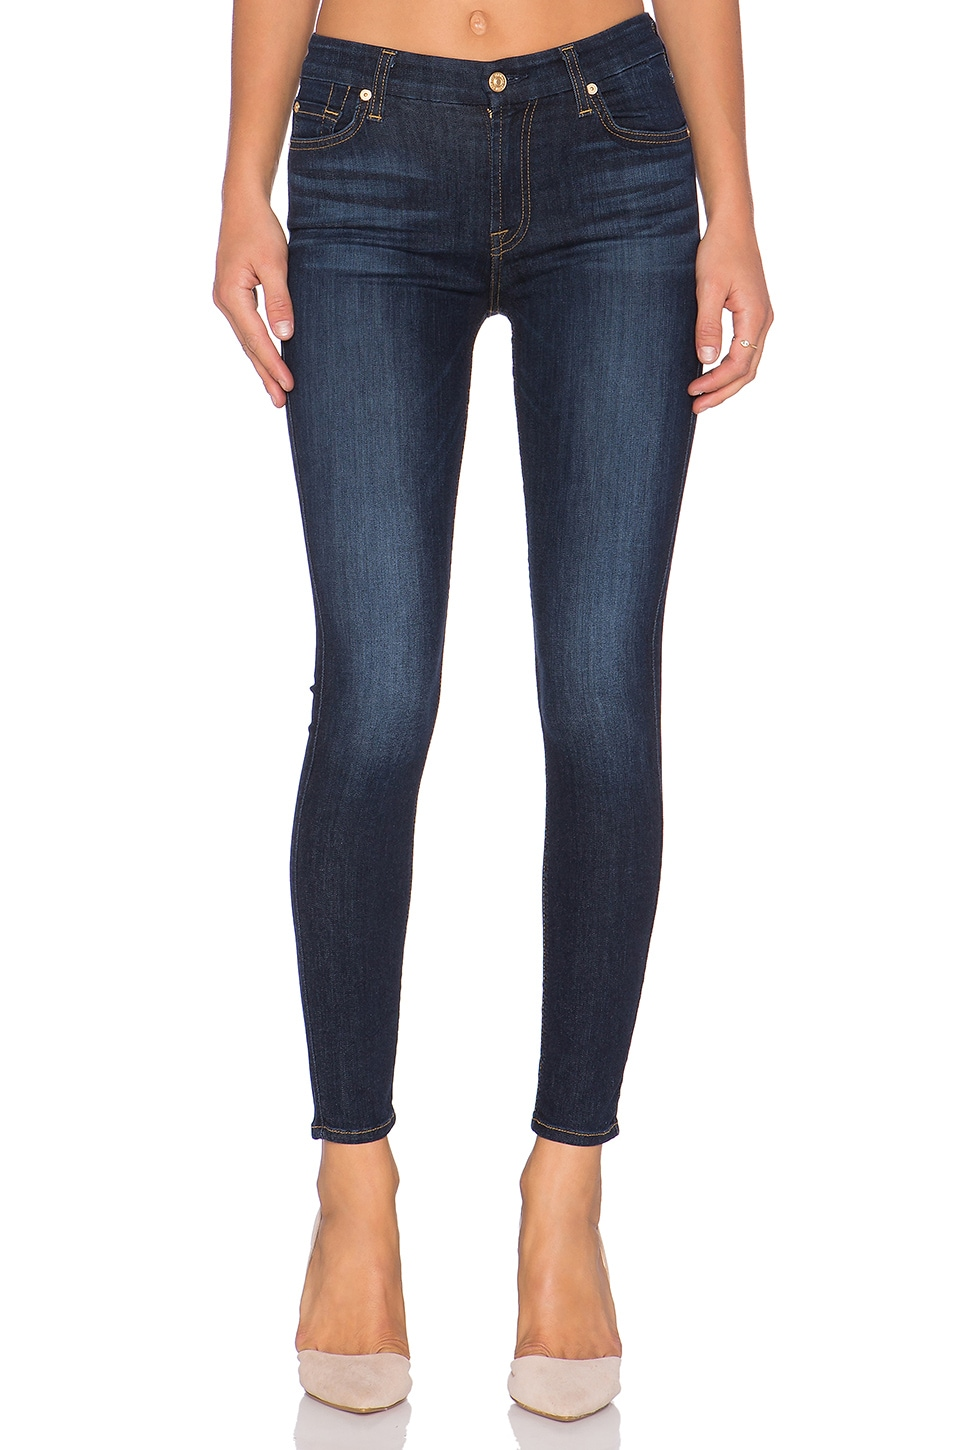 7 For All Mankind Ankle Skinny in Slim Illusion Tried & True Blue